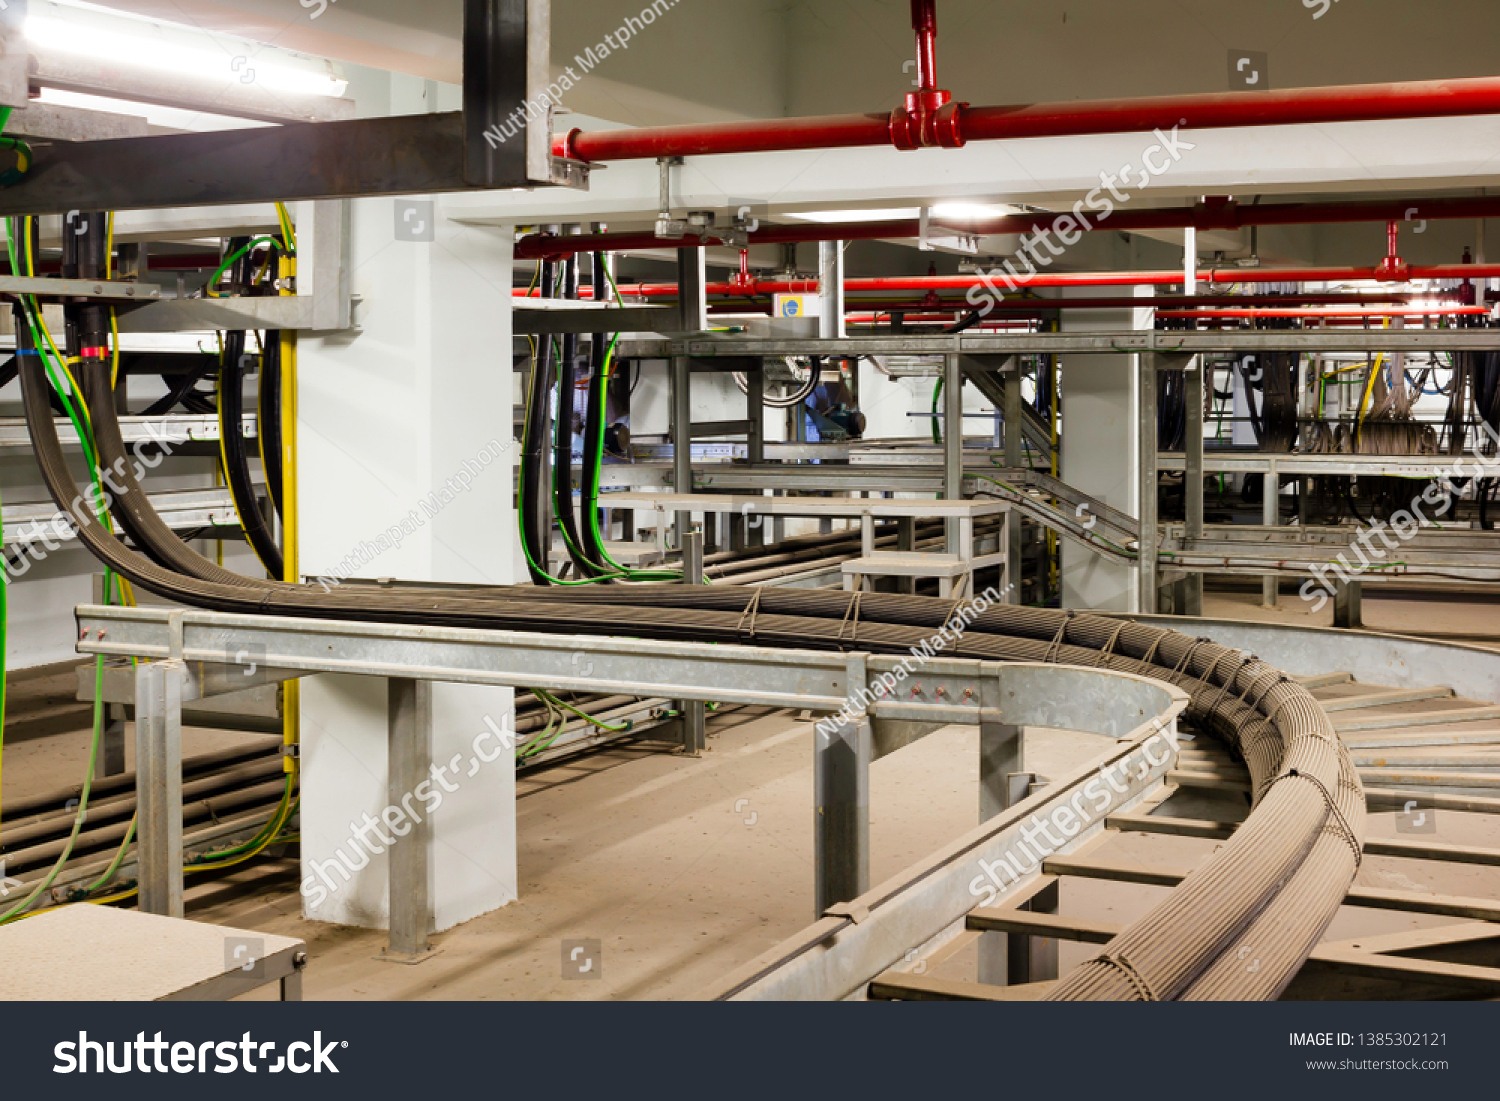 The power cable install on cable ladder in cable room #1385302121